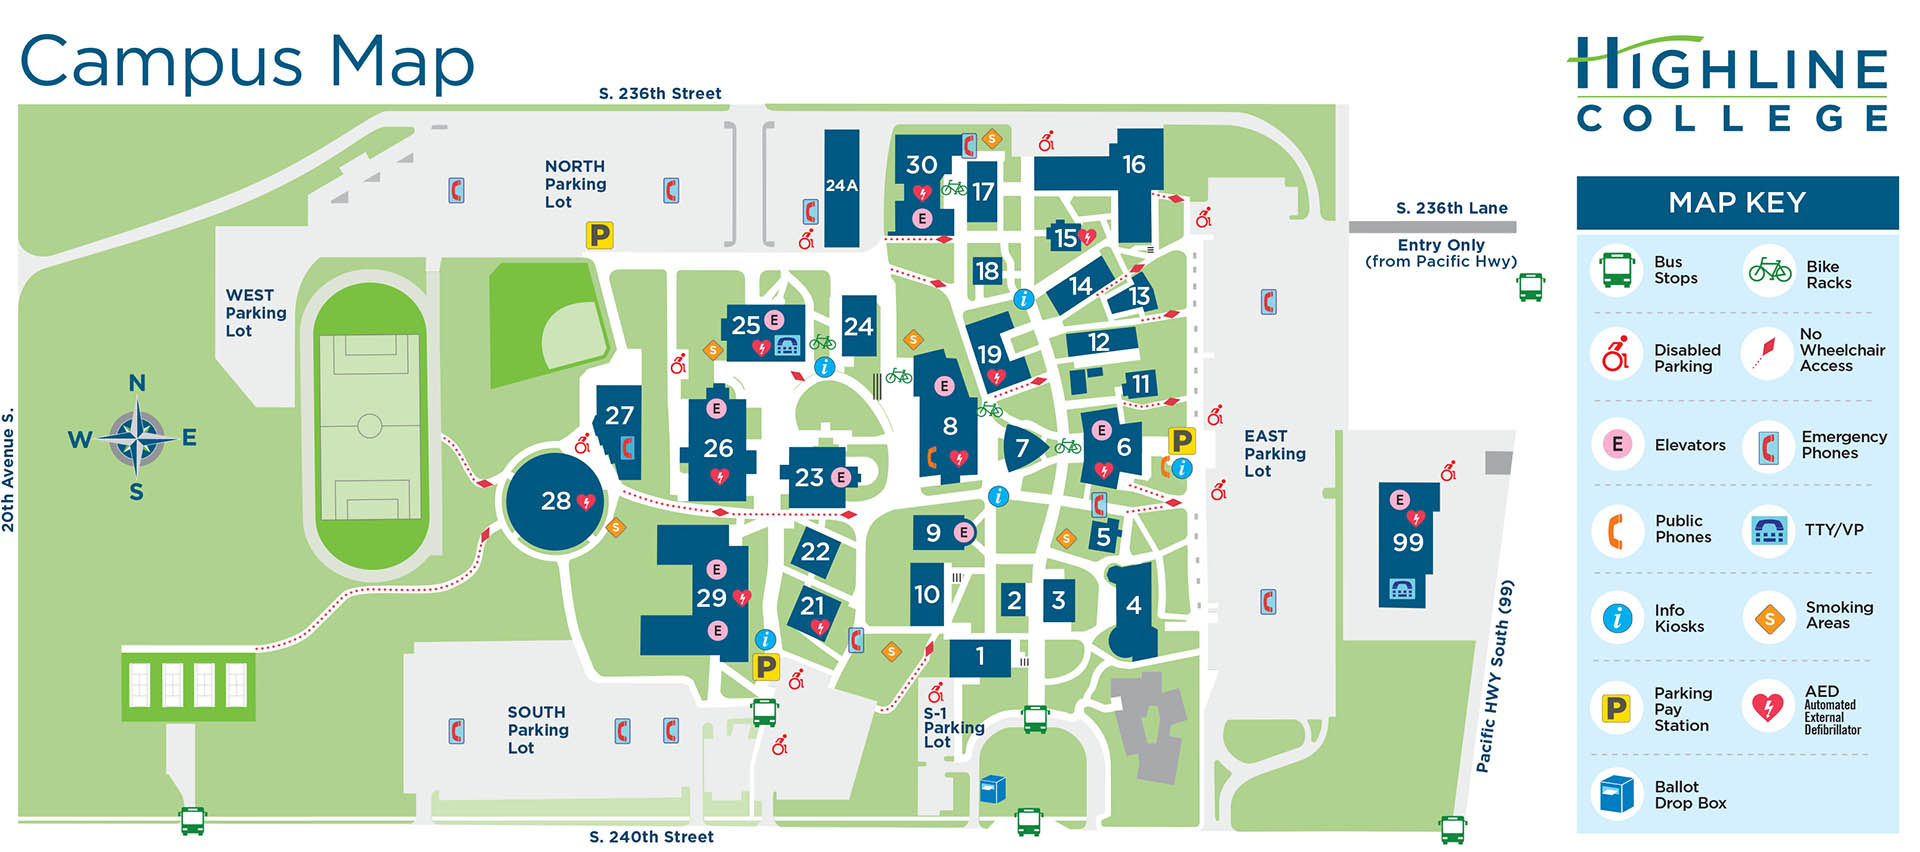 Highline College Campus Map